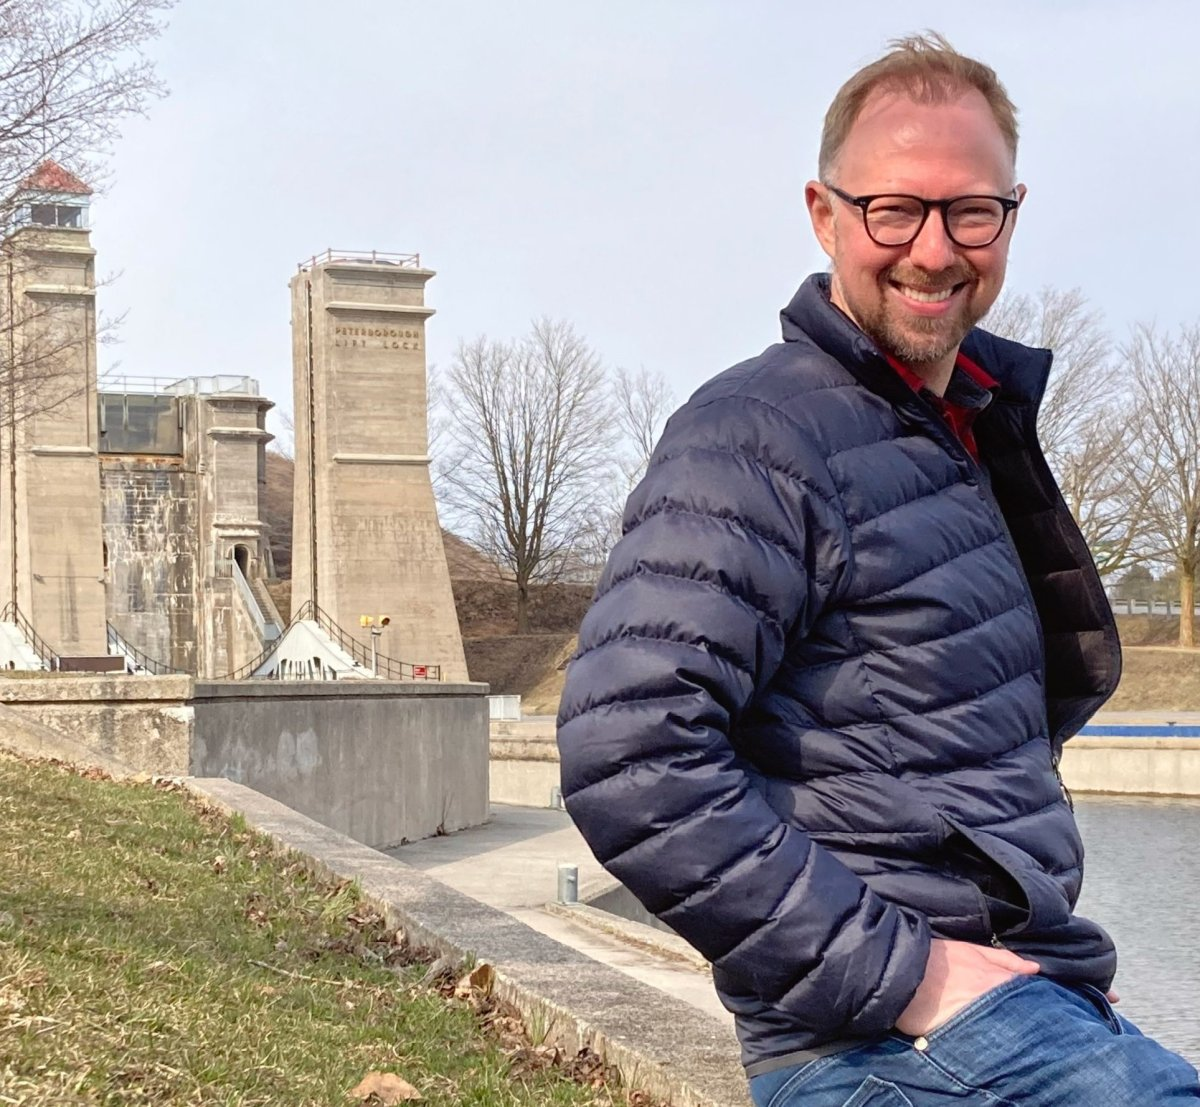 Greg Dempsey of Peterborough is seeking the provincial Liberal nomination in the riding of Peterborough-Kawartha.